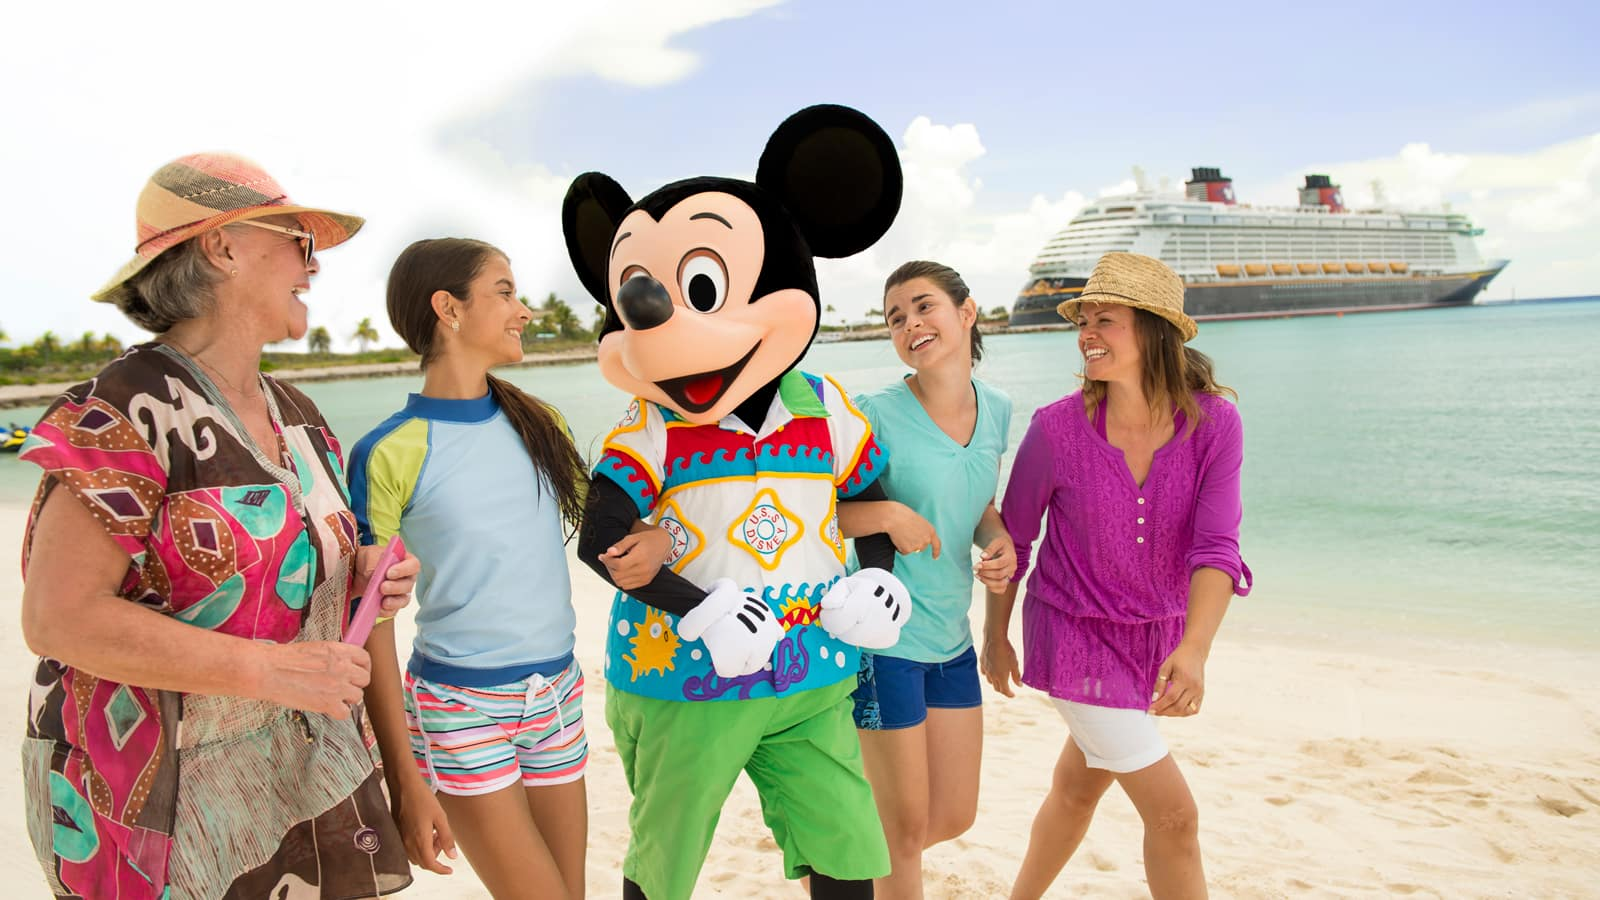 Mickey Mouse walks with 4 women on a beach with a Disney Cruise Line ship in the background